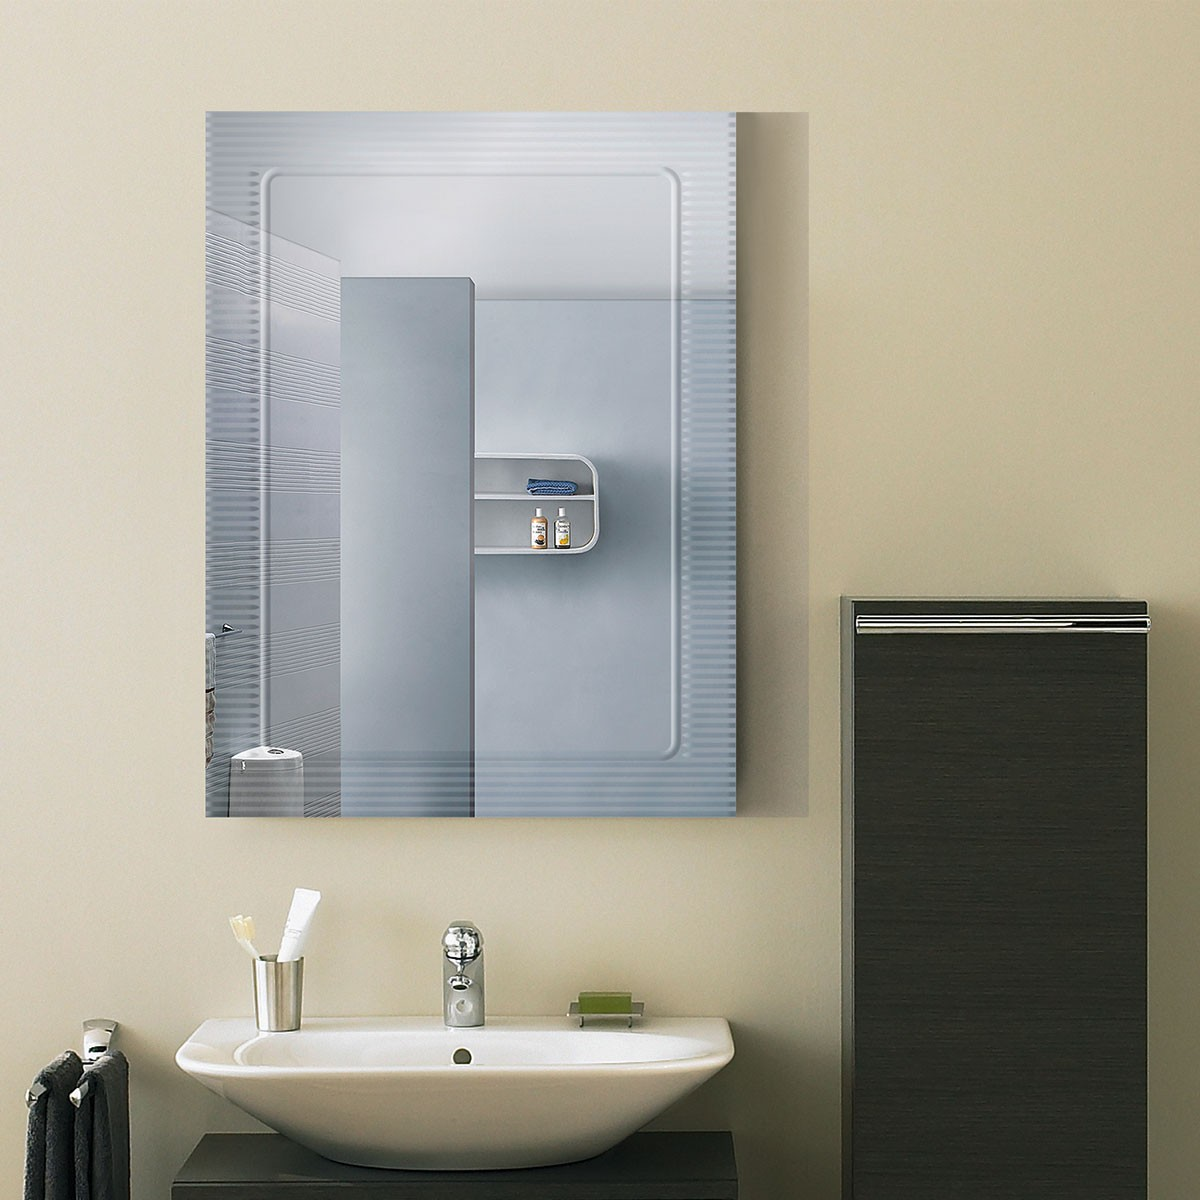 18 x 24 bathroom mirror 24 x 18 in wall mounted rectangle bathroom mirror dk od 21766